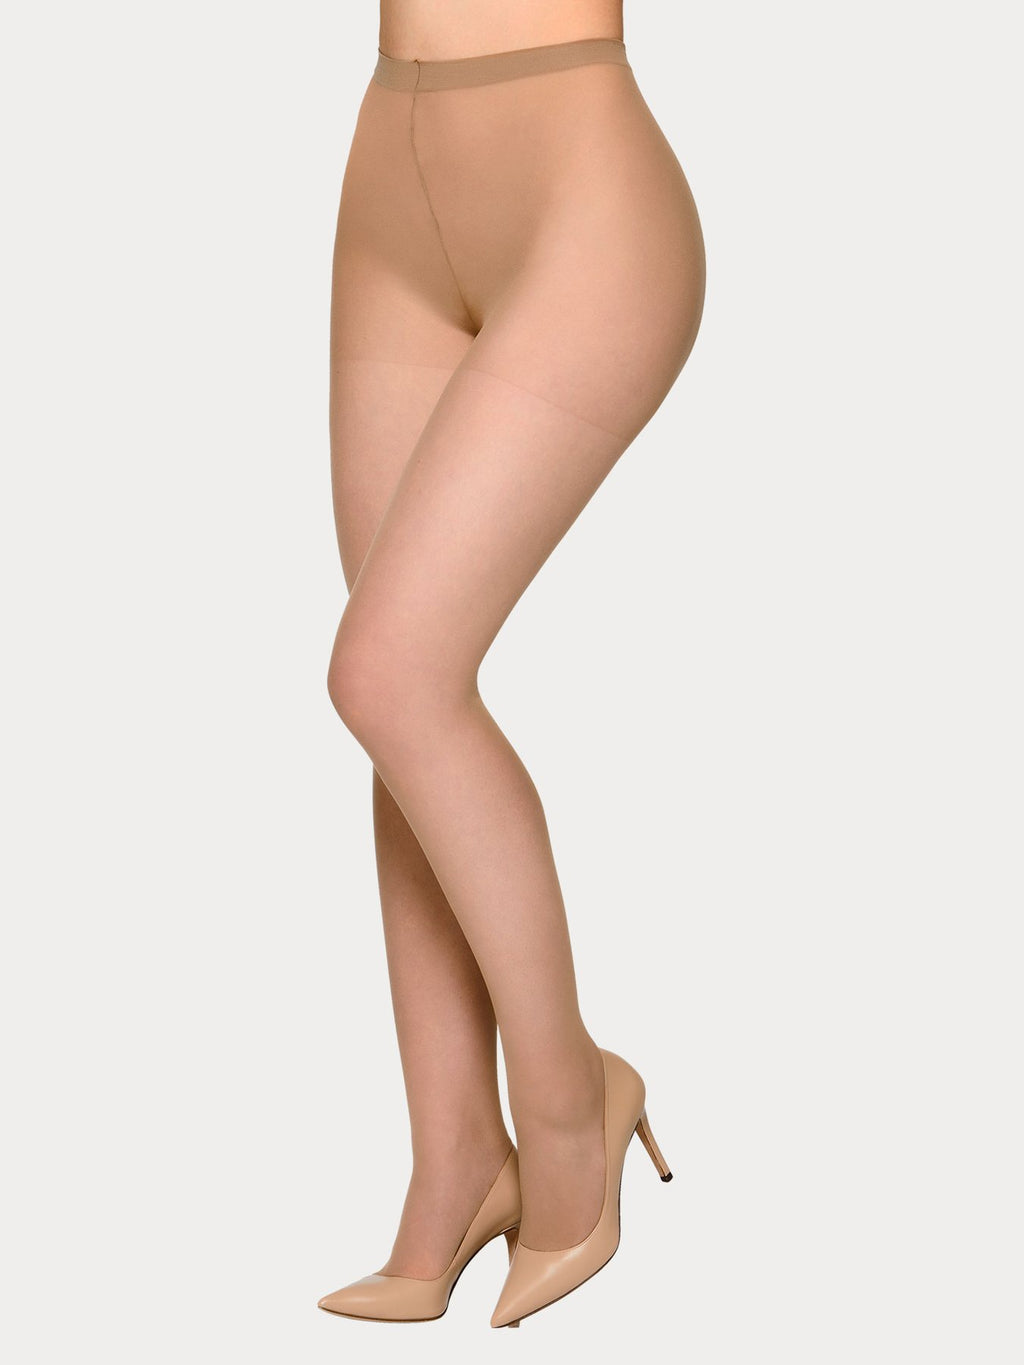 Vogue Hosiery sheer 20 denier tights in a matte look and with shorter leg designed specifically for plus size women.